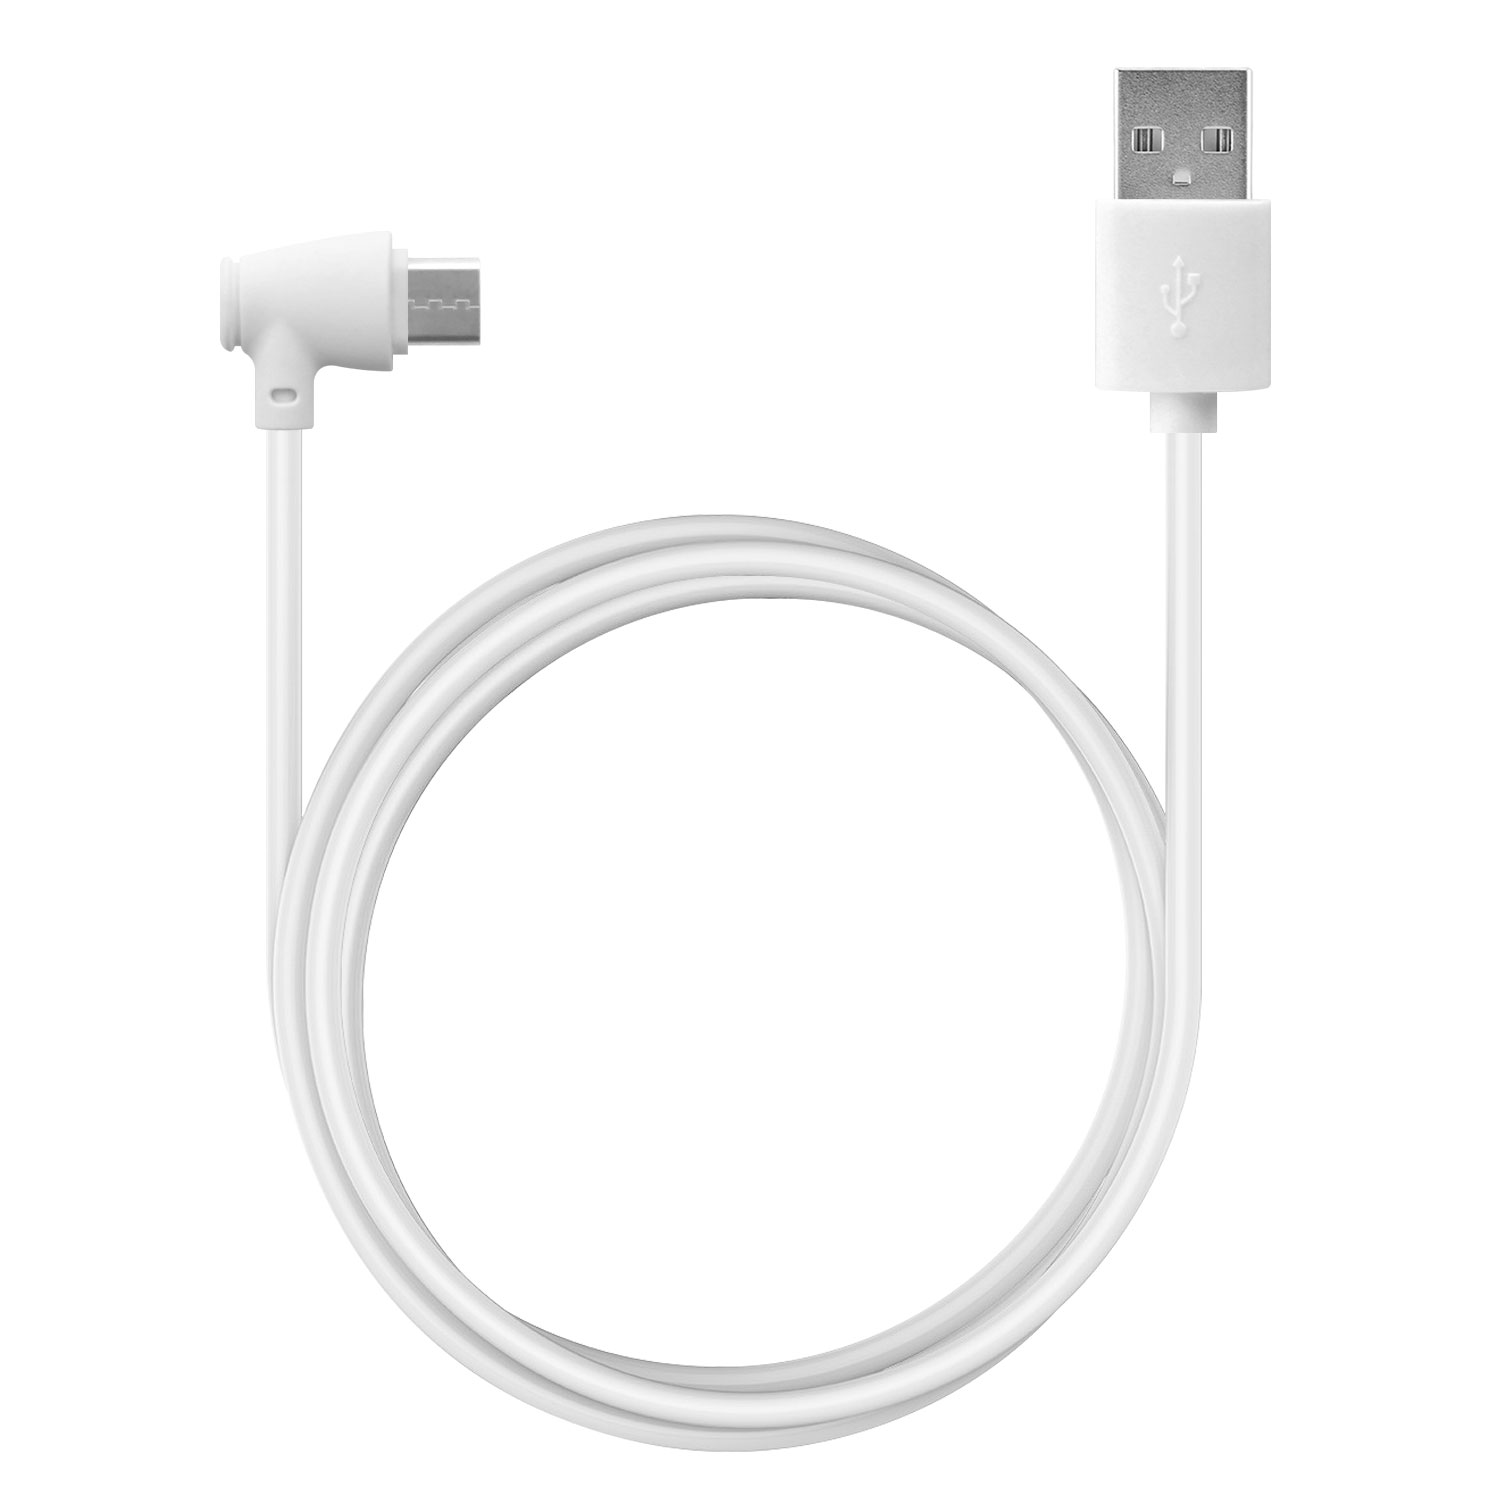 Huawei P9 USB Type-C To USB Type-A Data Charging Cable White 3.3ft Angled